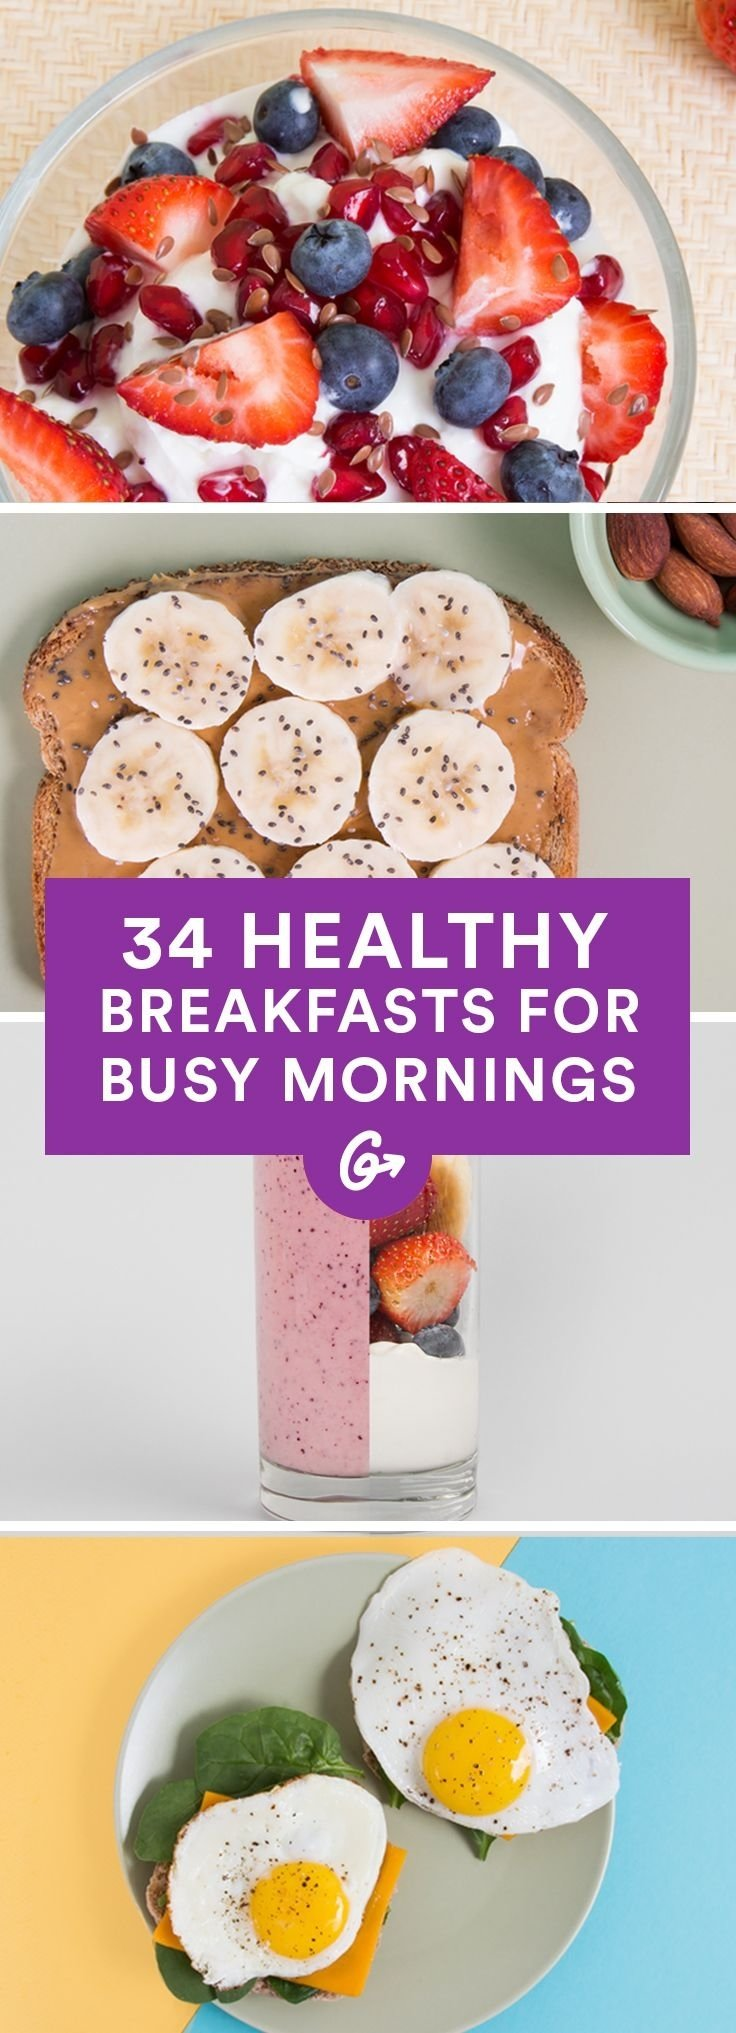 10 Lovely Quick And Healthy Breakfast Ideas 39 healthy breakfasts for busy mornings healthy breakfasts 3